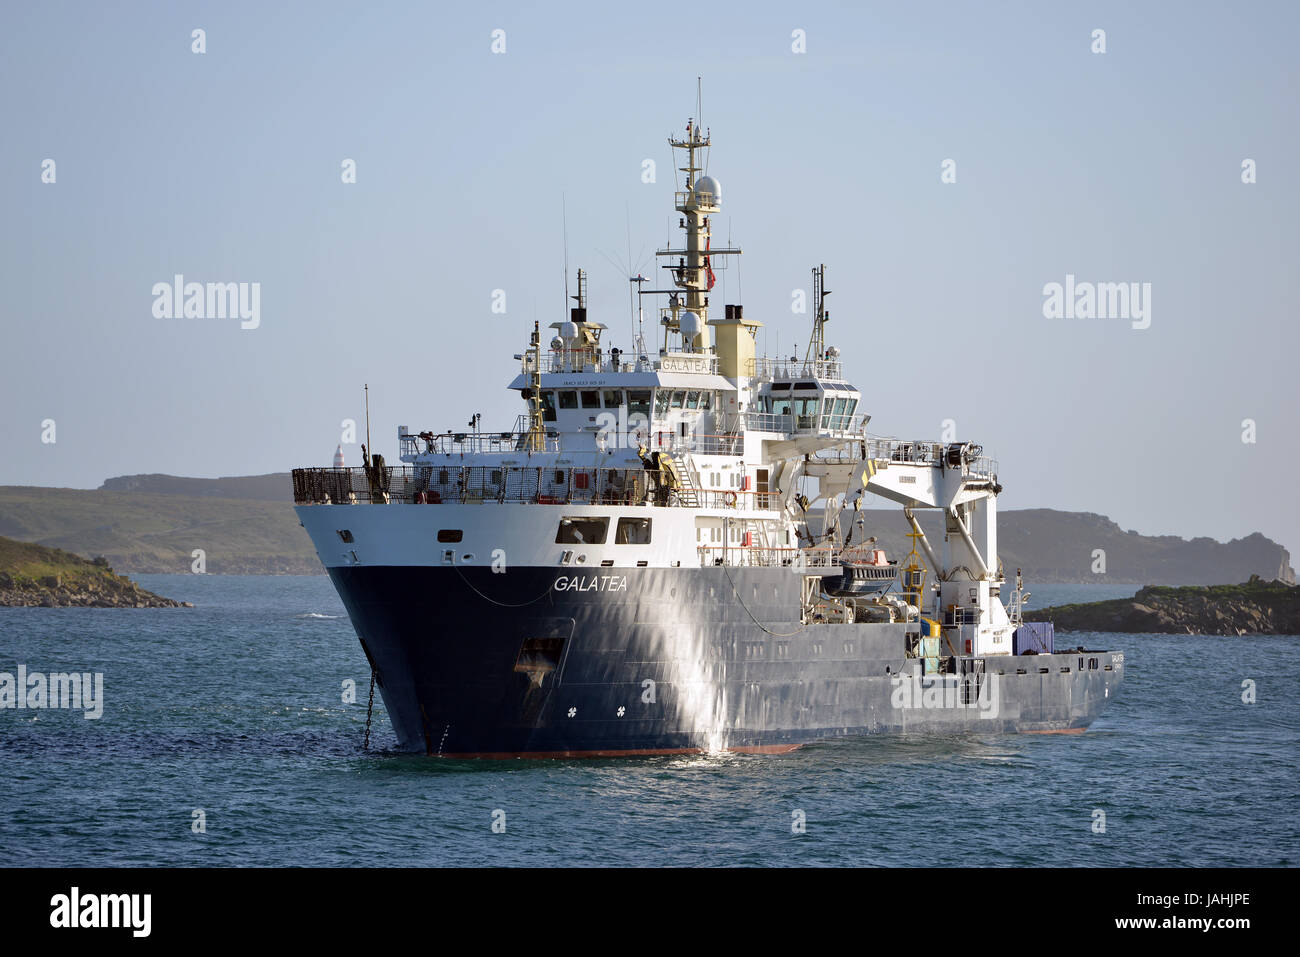 The Galatea, a buoy-laying vessel and lighthouse tender, in the Scilly Isles. - Stock Image